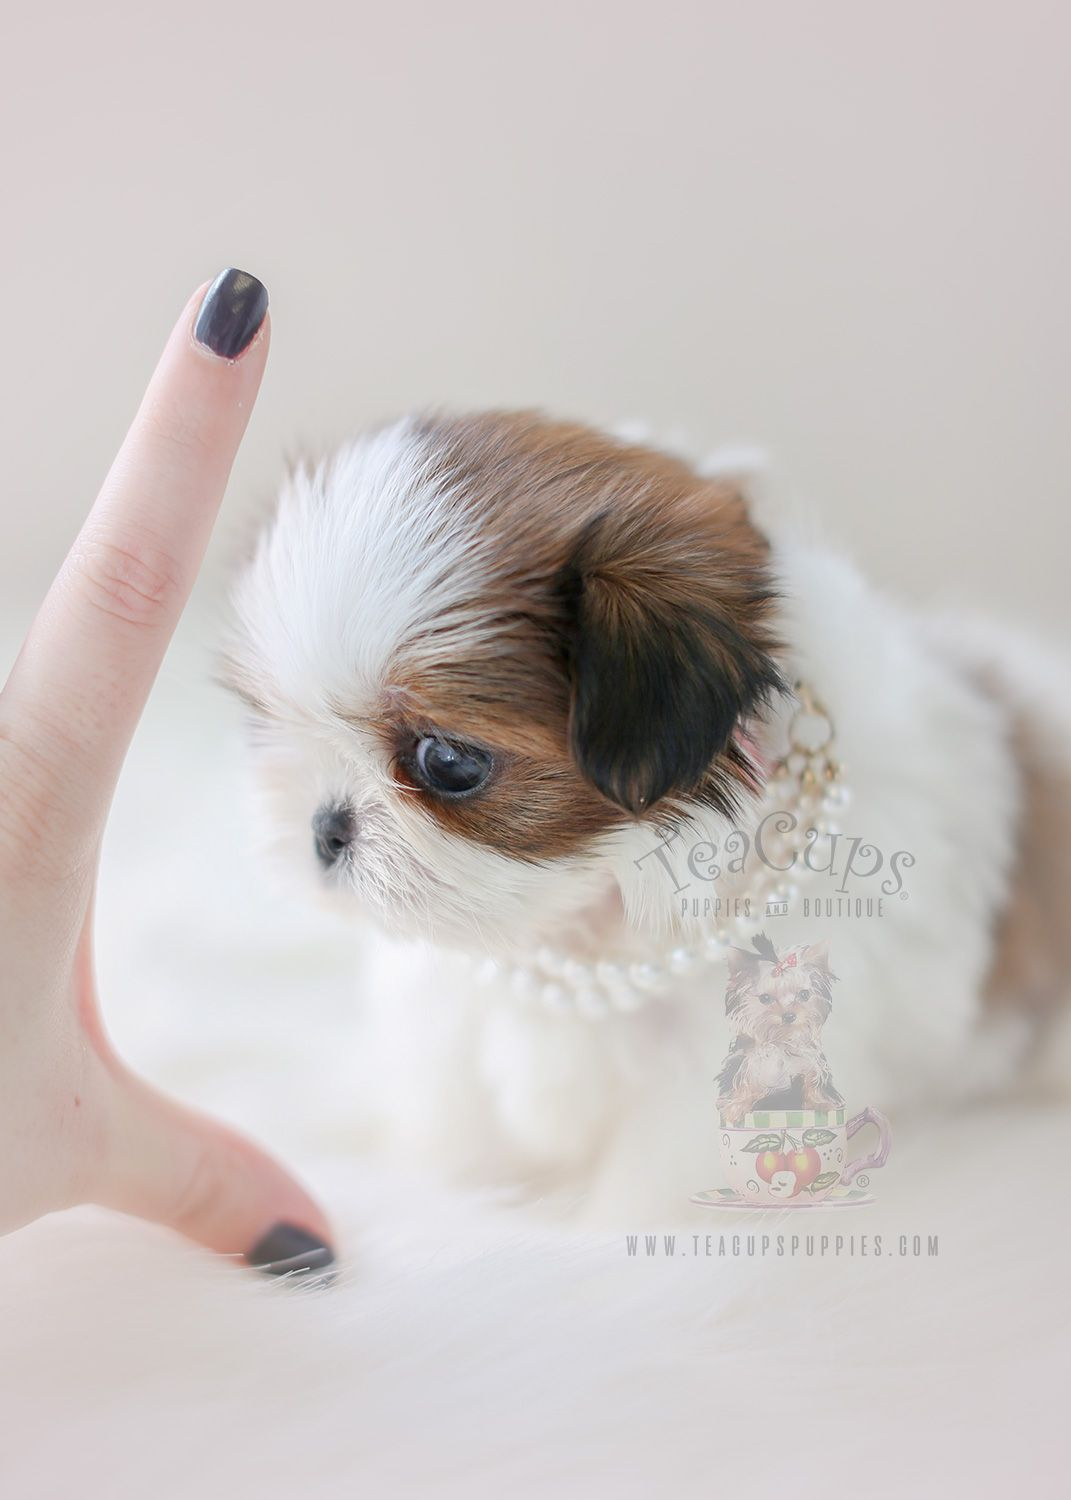 Teenie Tiny Shih Tzu Puppy By Teacup Puppies Boutique Shihtzu Tinypuppy Tinydog Tinytype Tinytypeshihtzu P Teacup Puppies Shih Tzu Puppy Tiny Puppies